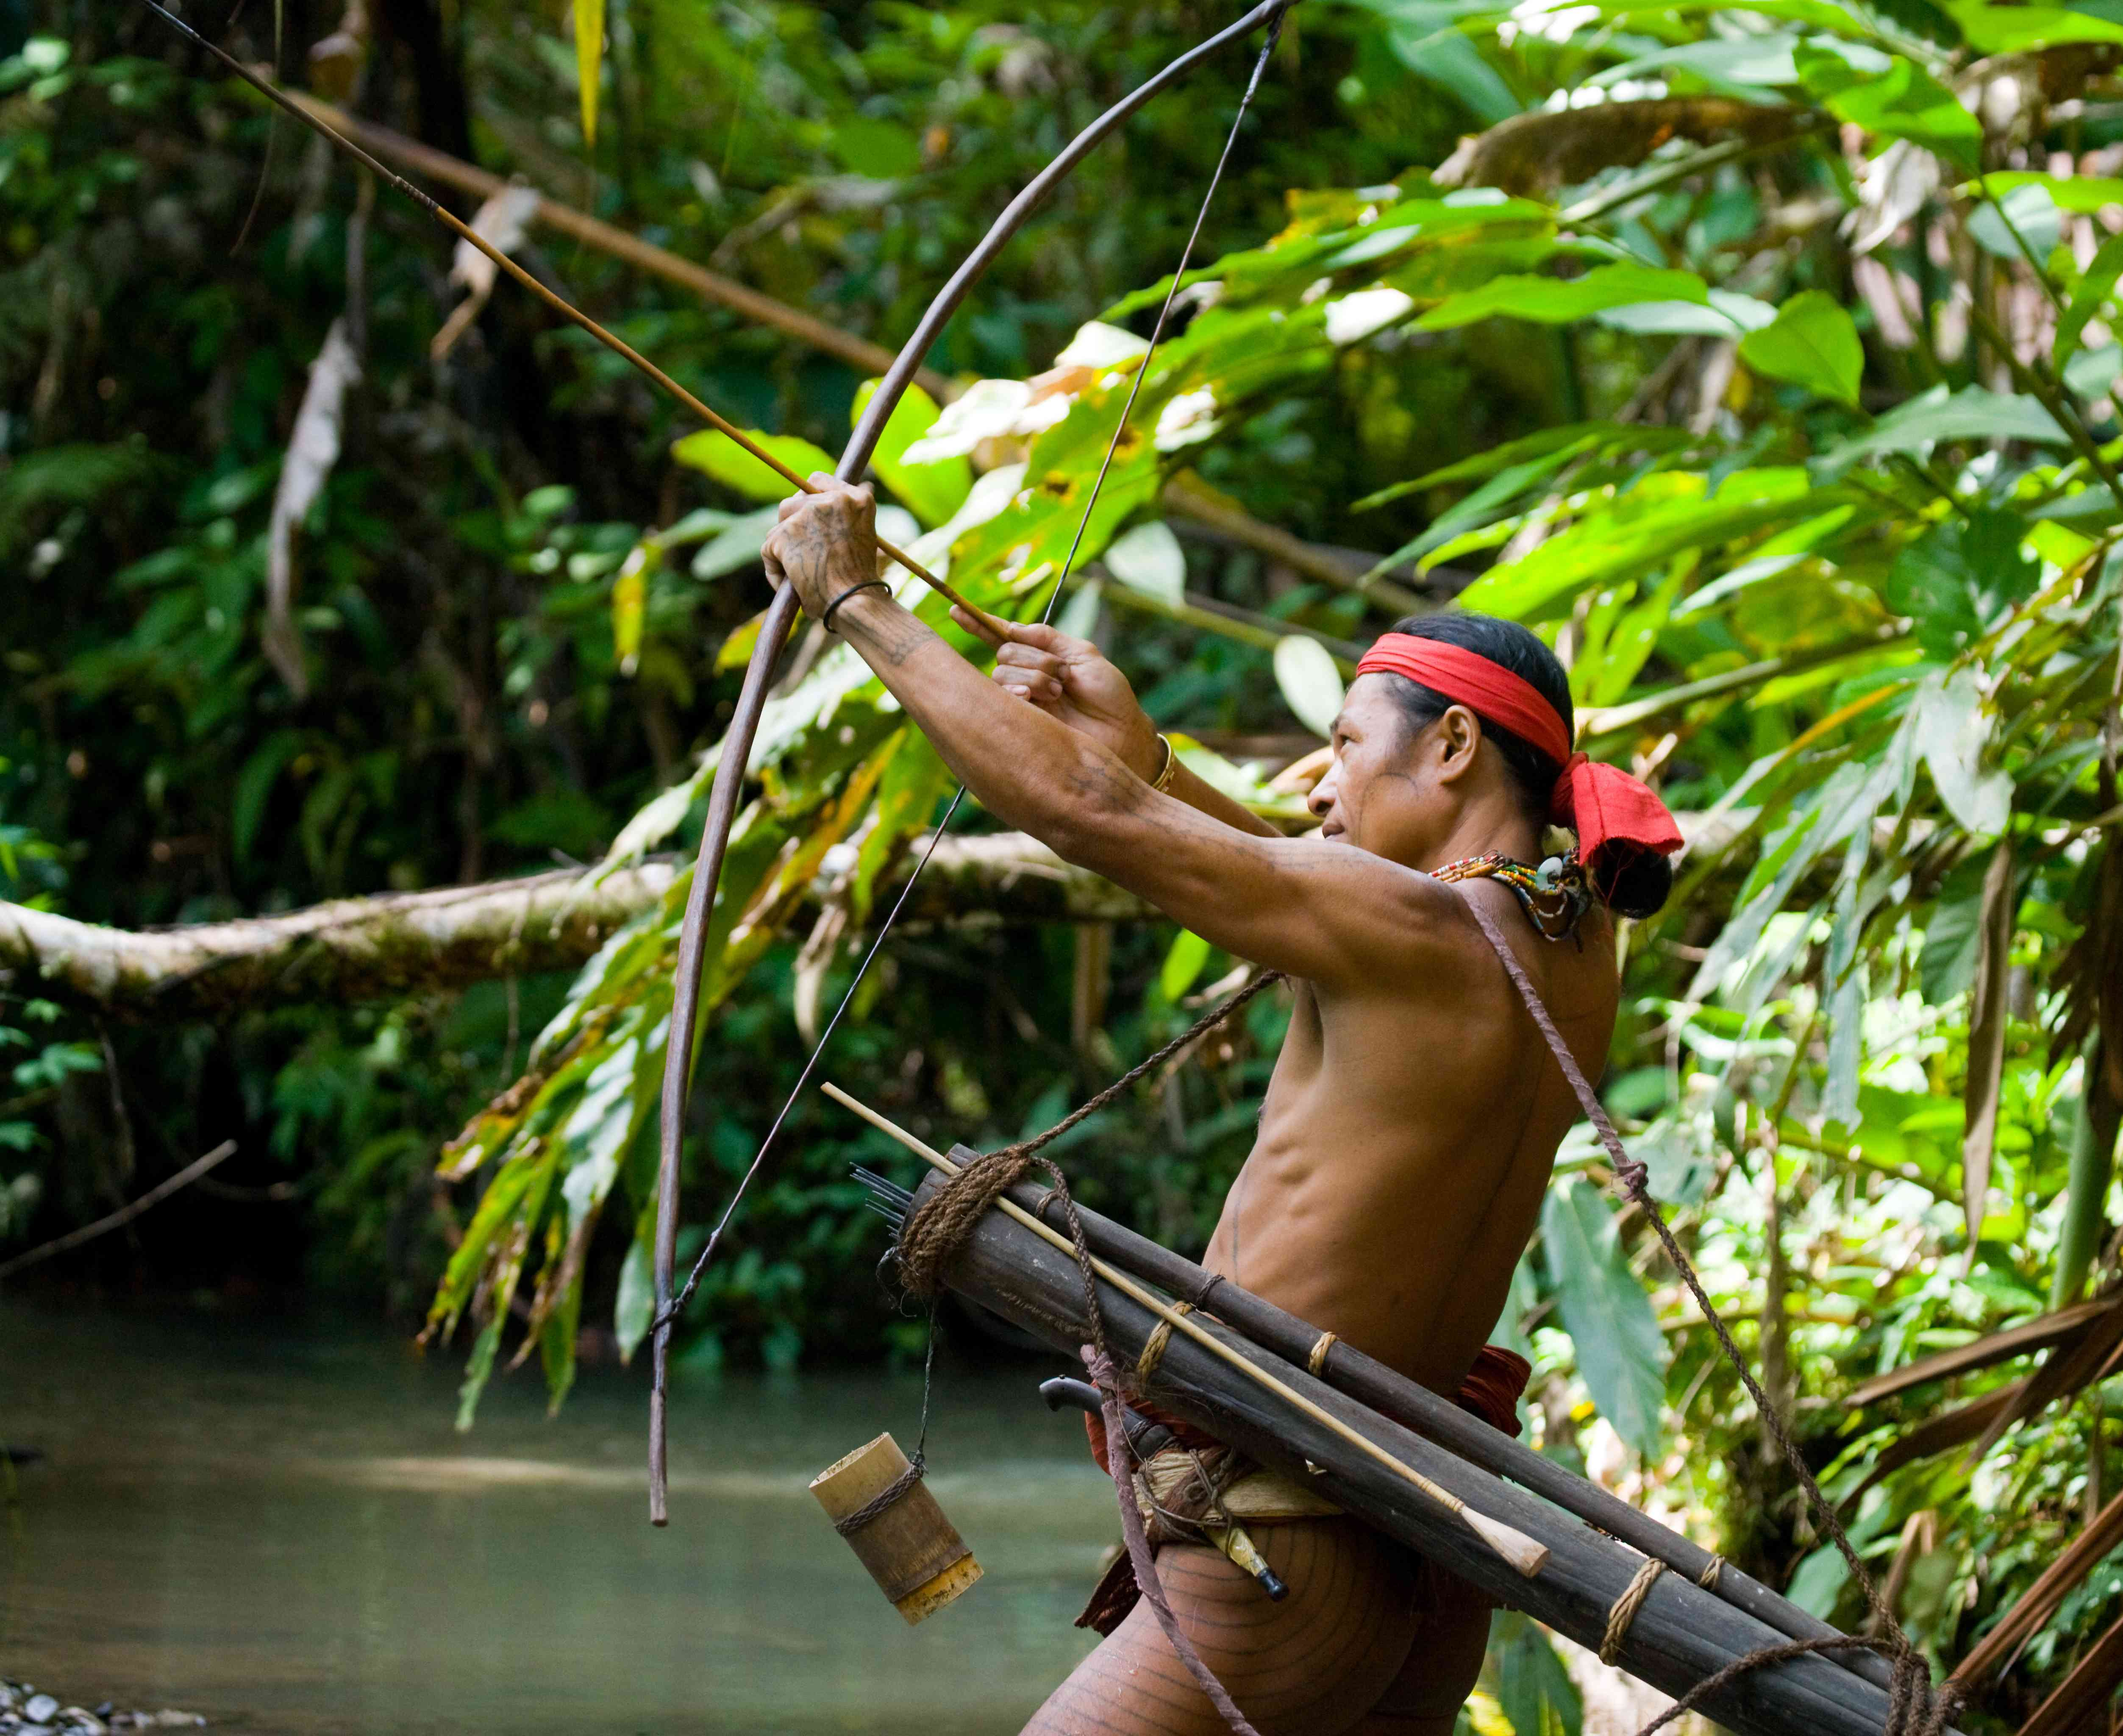 A Mentawai hunter with a bow and arrow